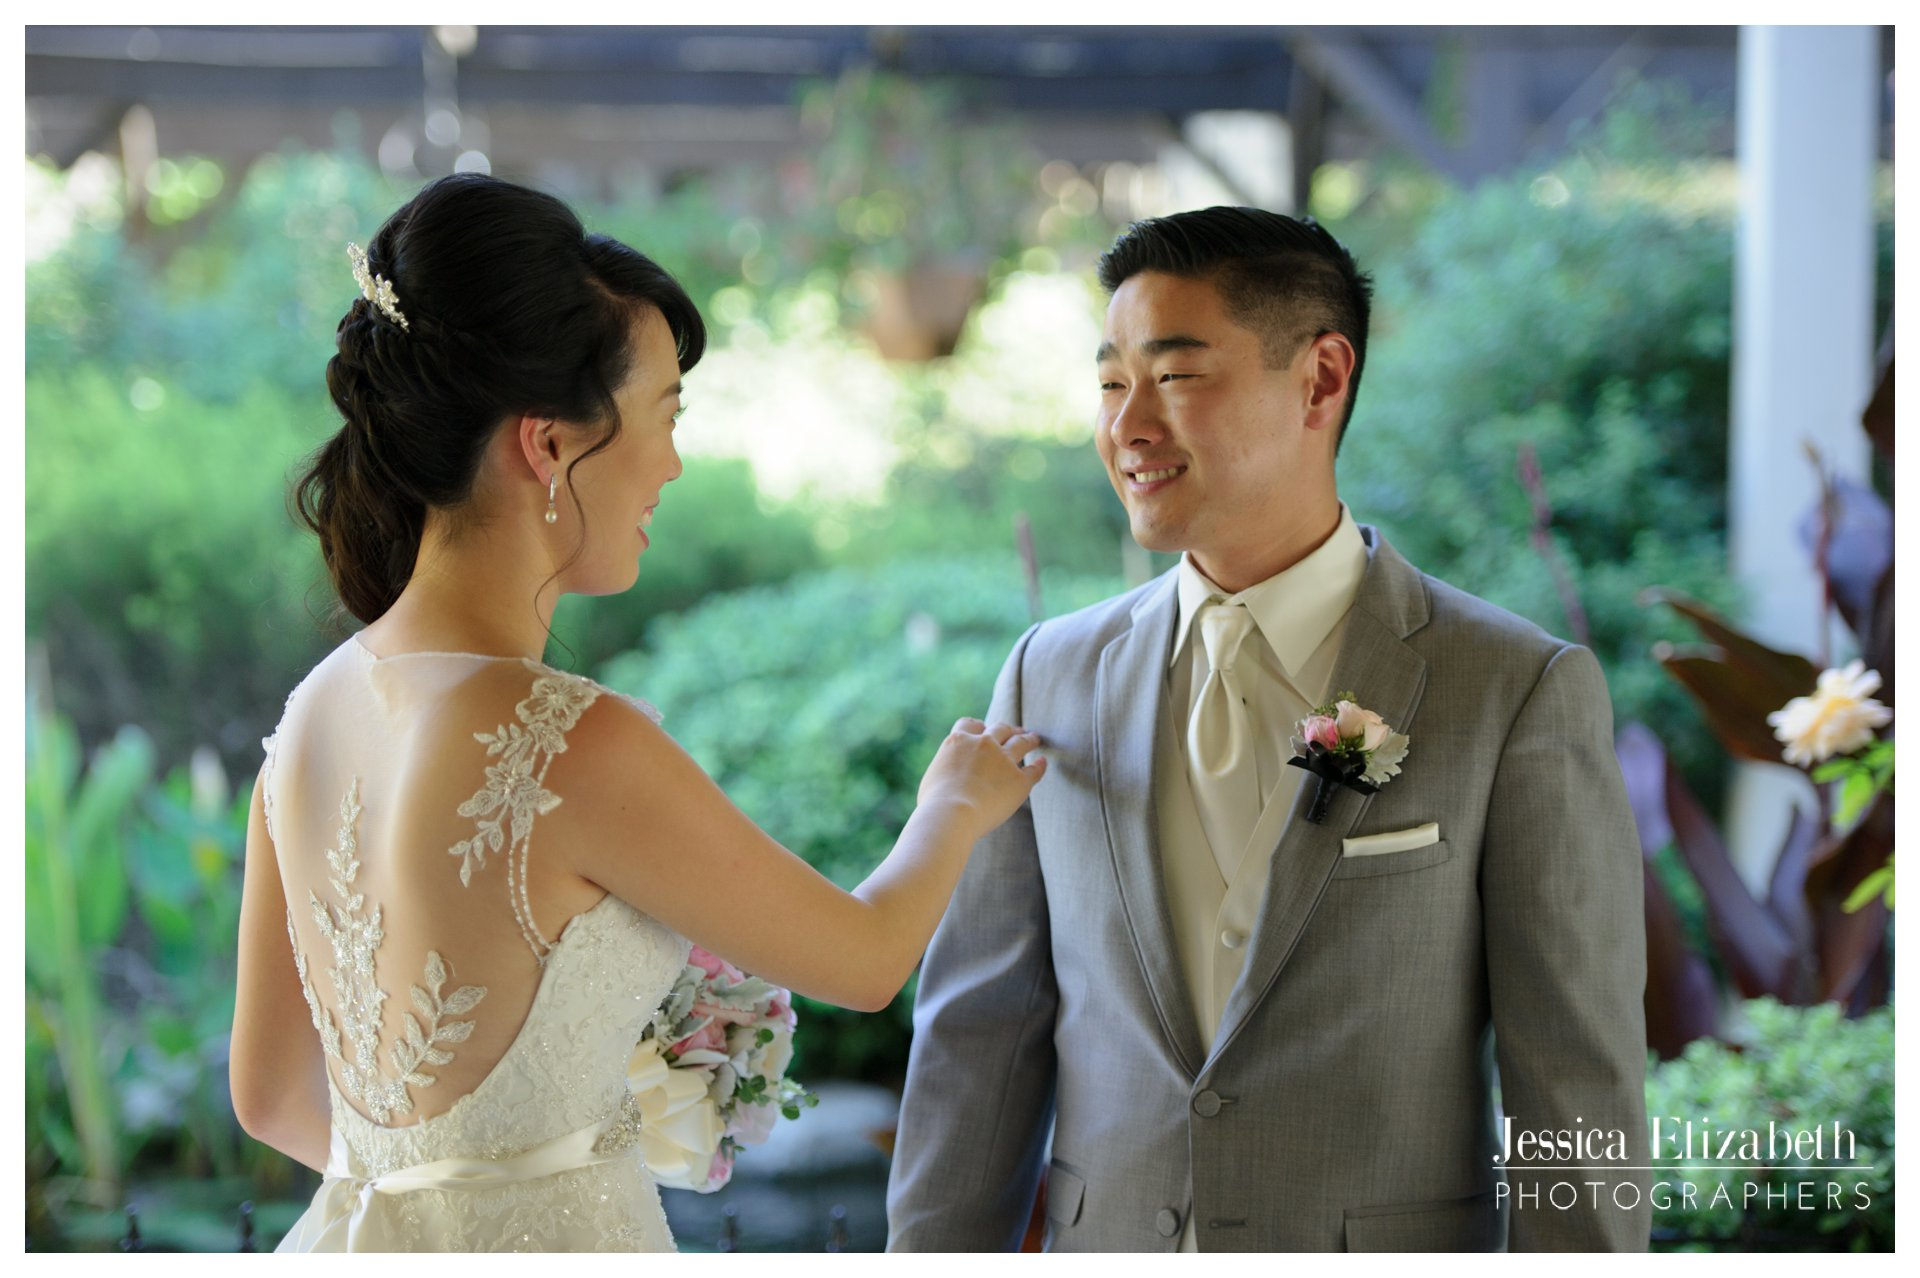 02-South Coast Botanic Garden Palos Verdes Wedding Photography by Jessica Elizabeth